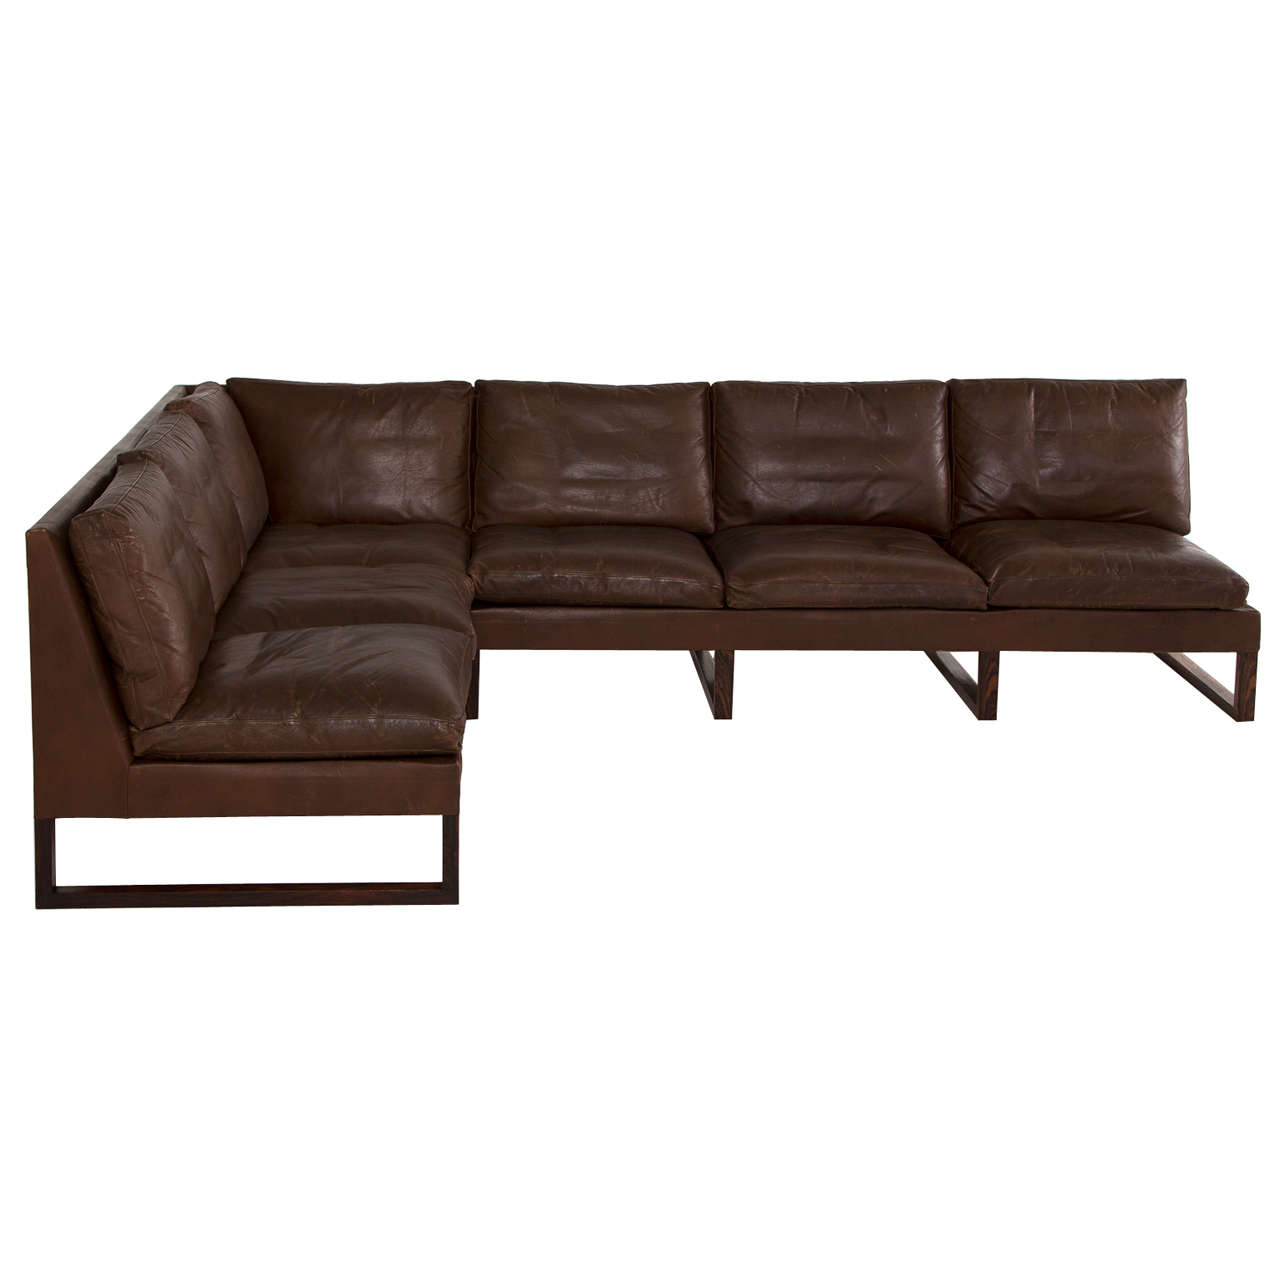 dark brown leather chair clear plastic danish mid century cornersofa in at 1stdibs for sale